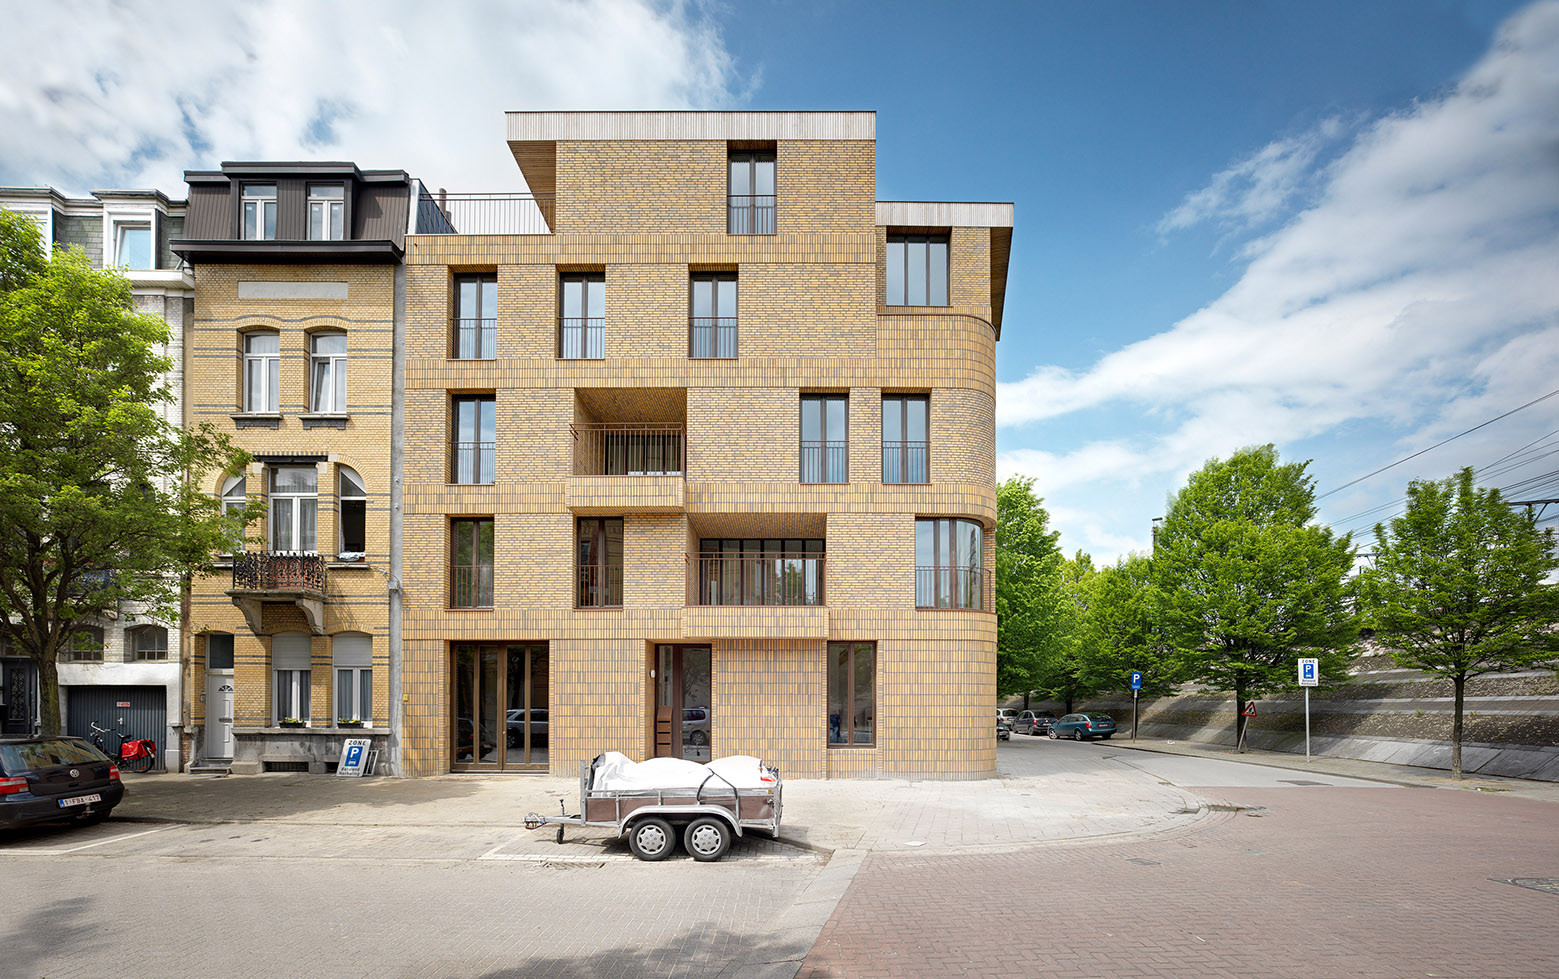 Collective housing AGVC / De Gouden Liniaal Architecten, © Bart Gosselin